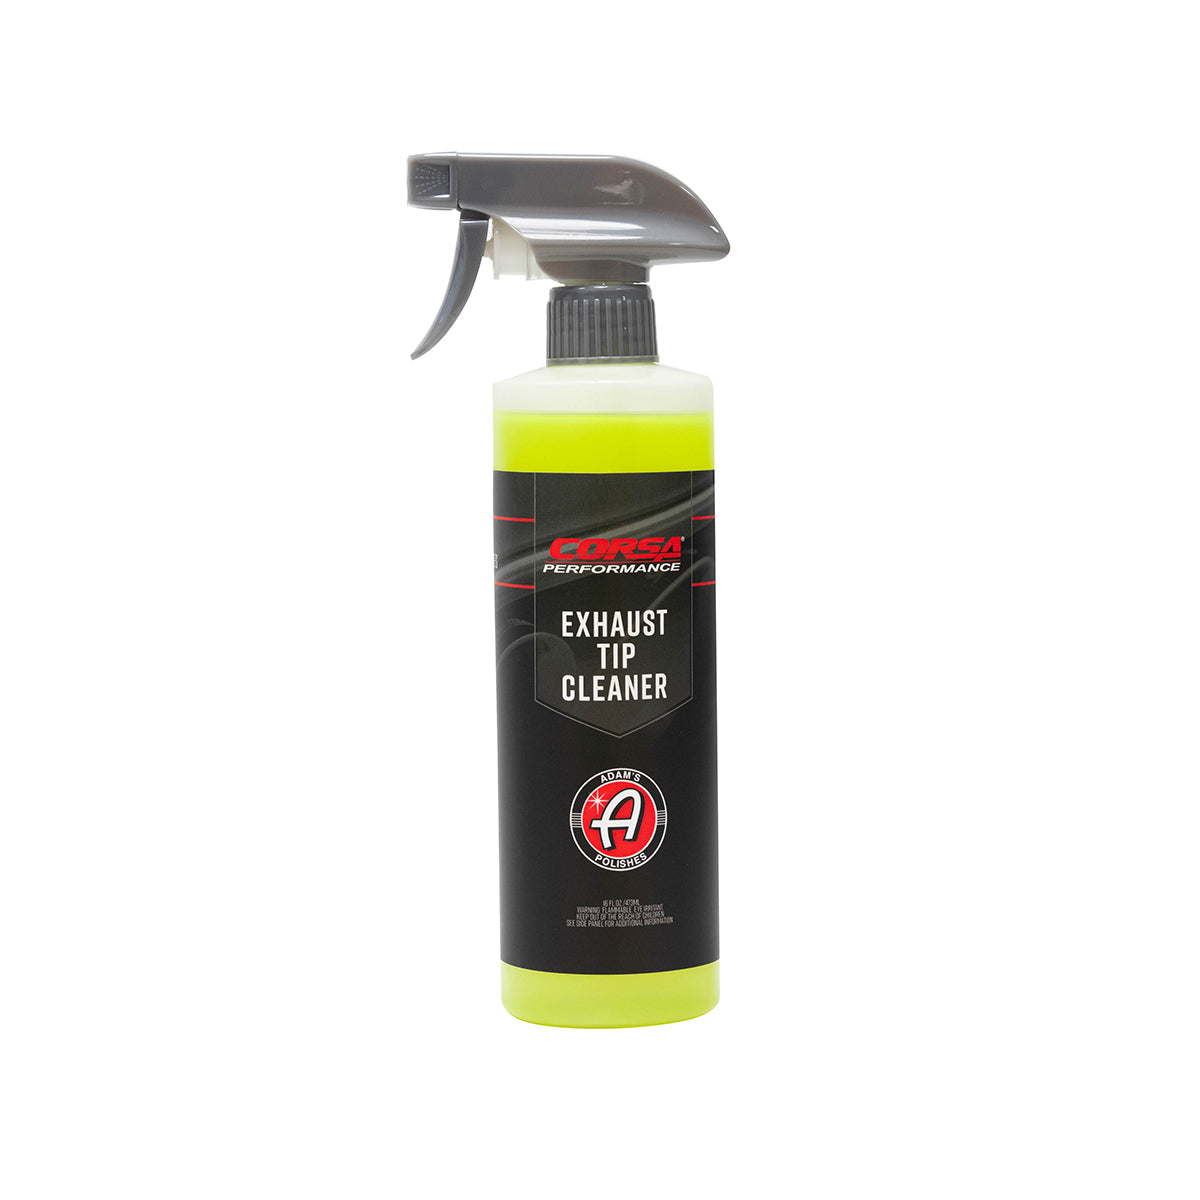 EXHAUST SYSTEM CLEANER (14091) 16 FL OZ